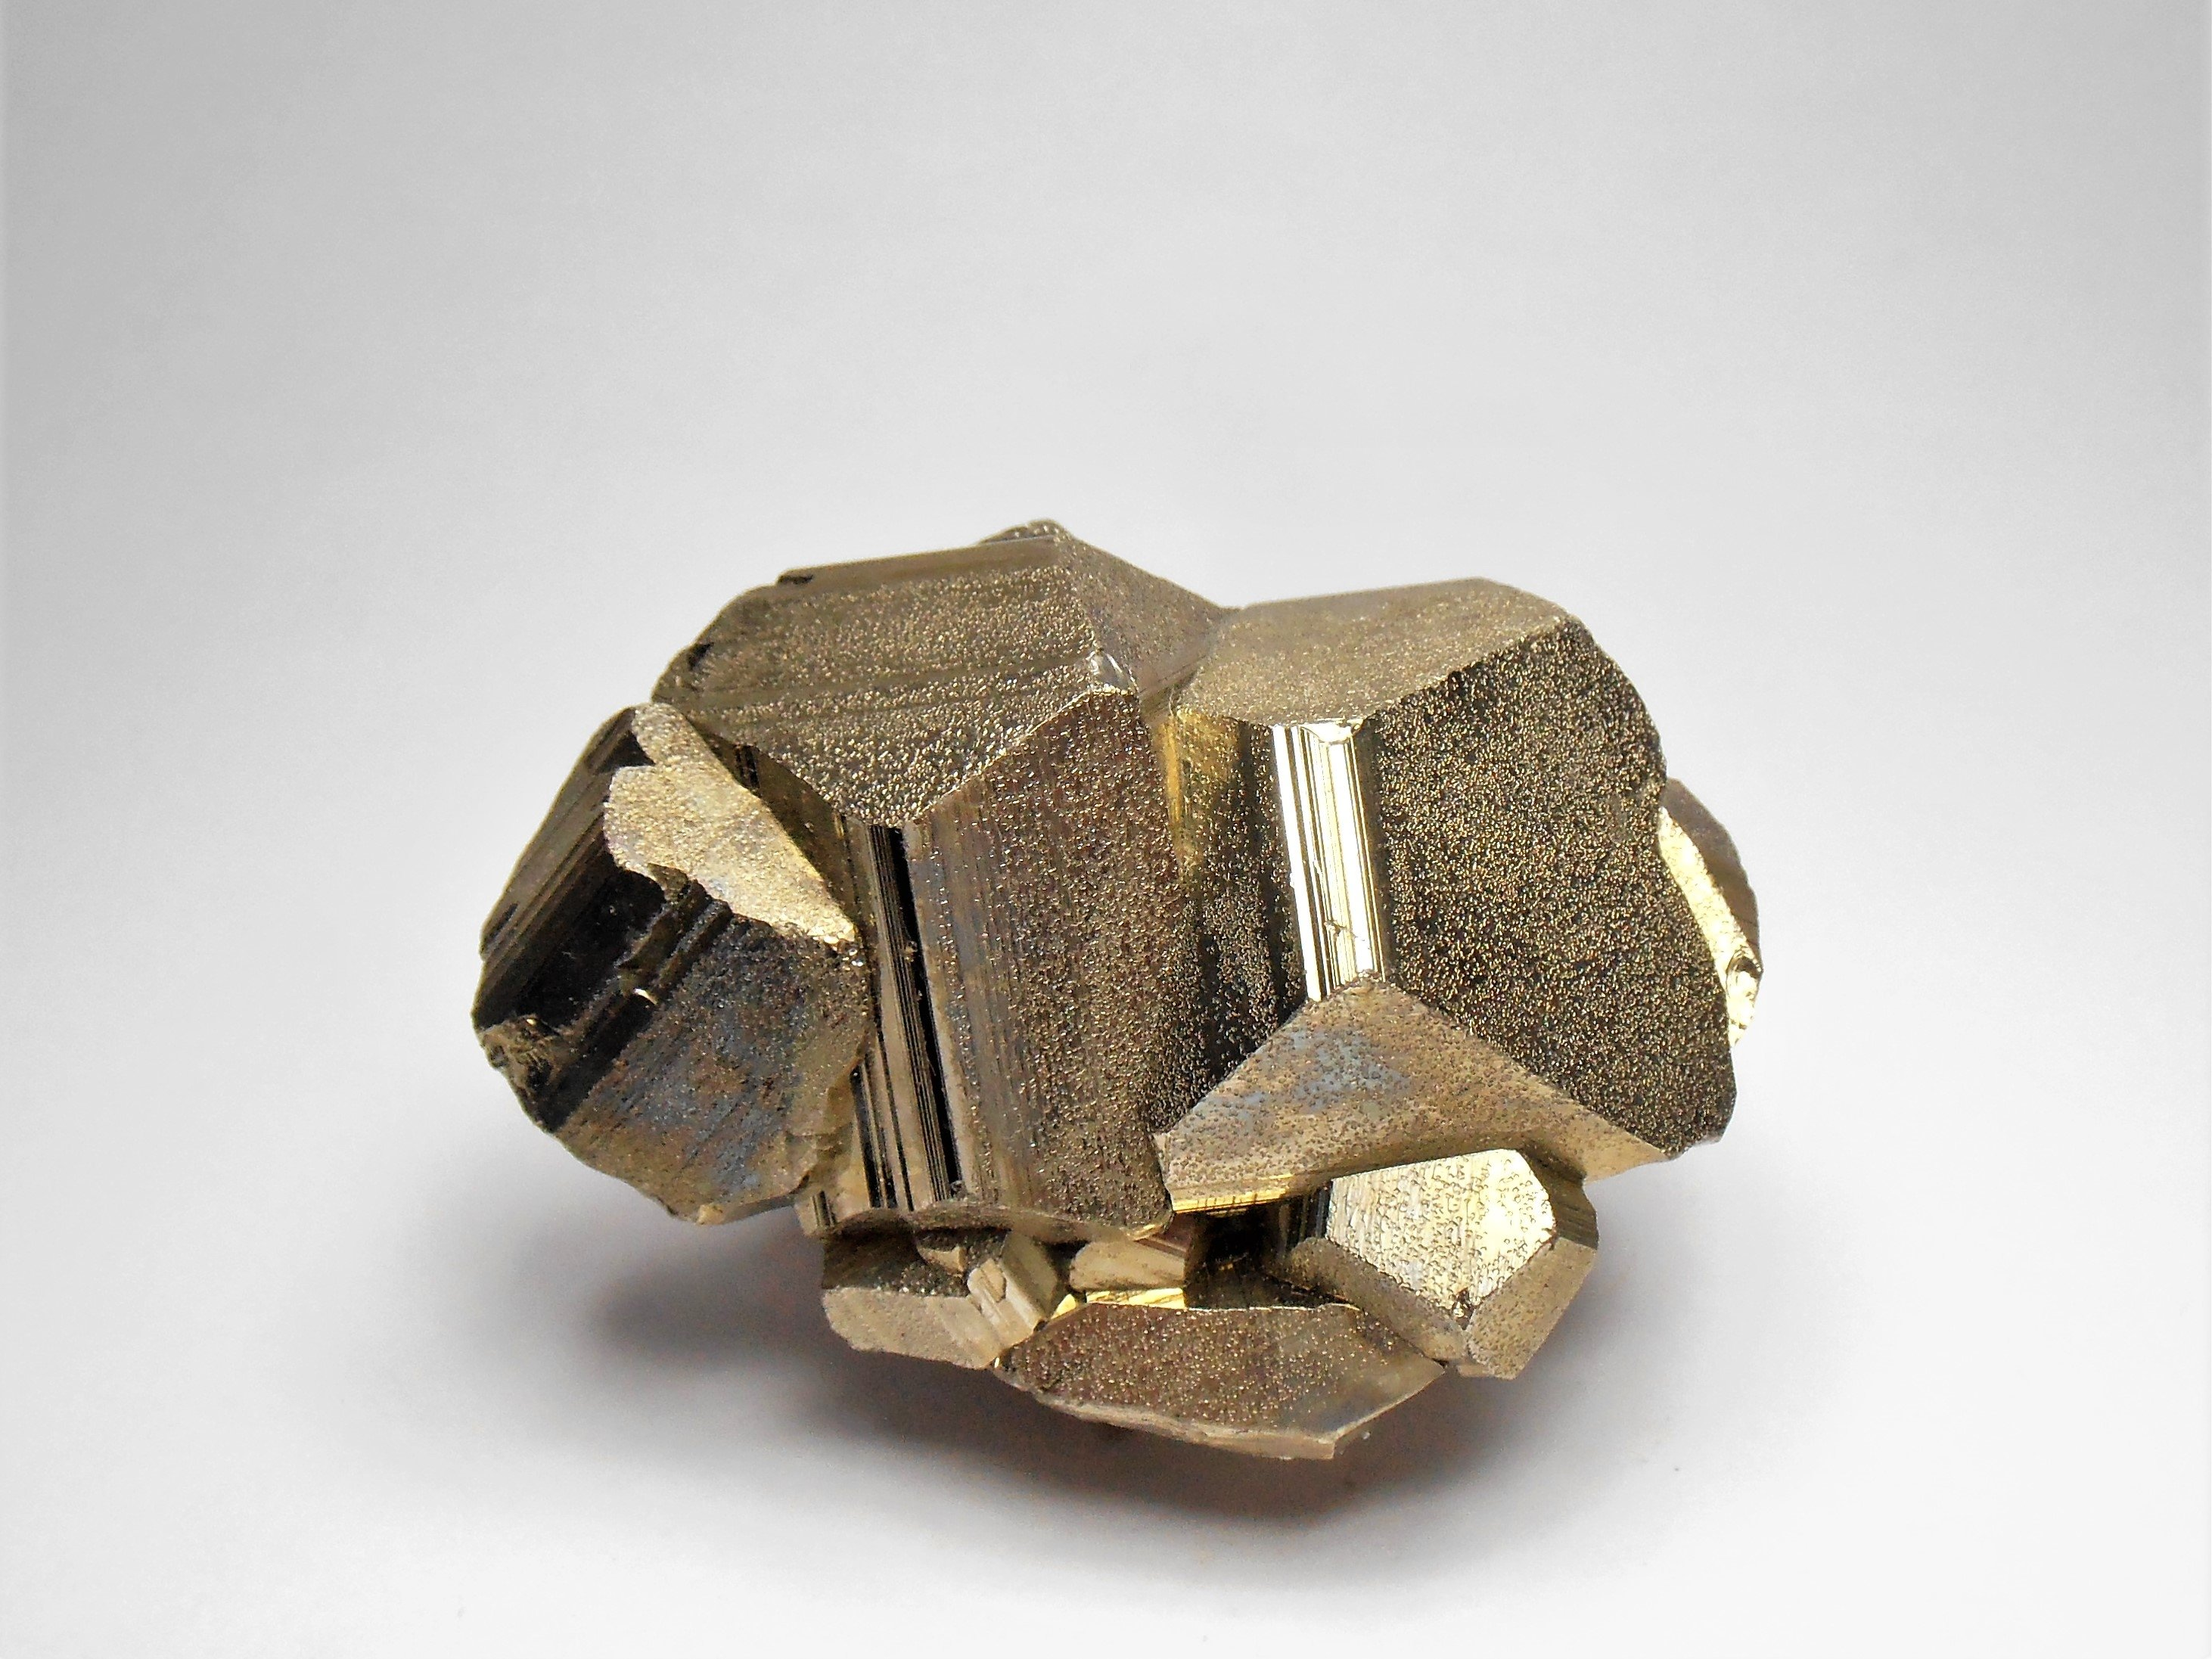 Pyrite - Large Crystals from the Huanzala Mine, Huallanca